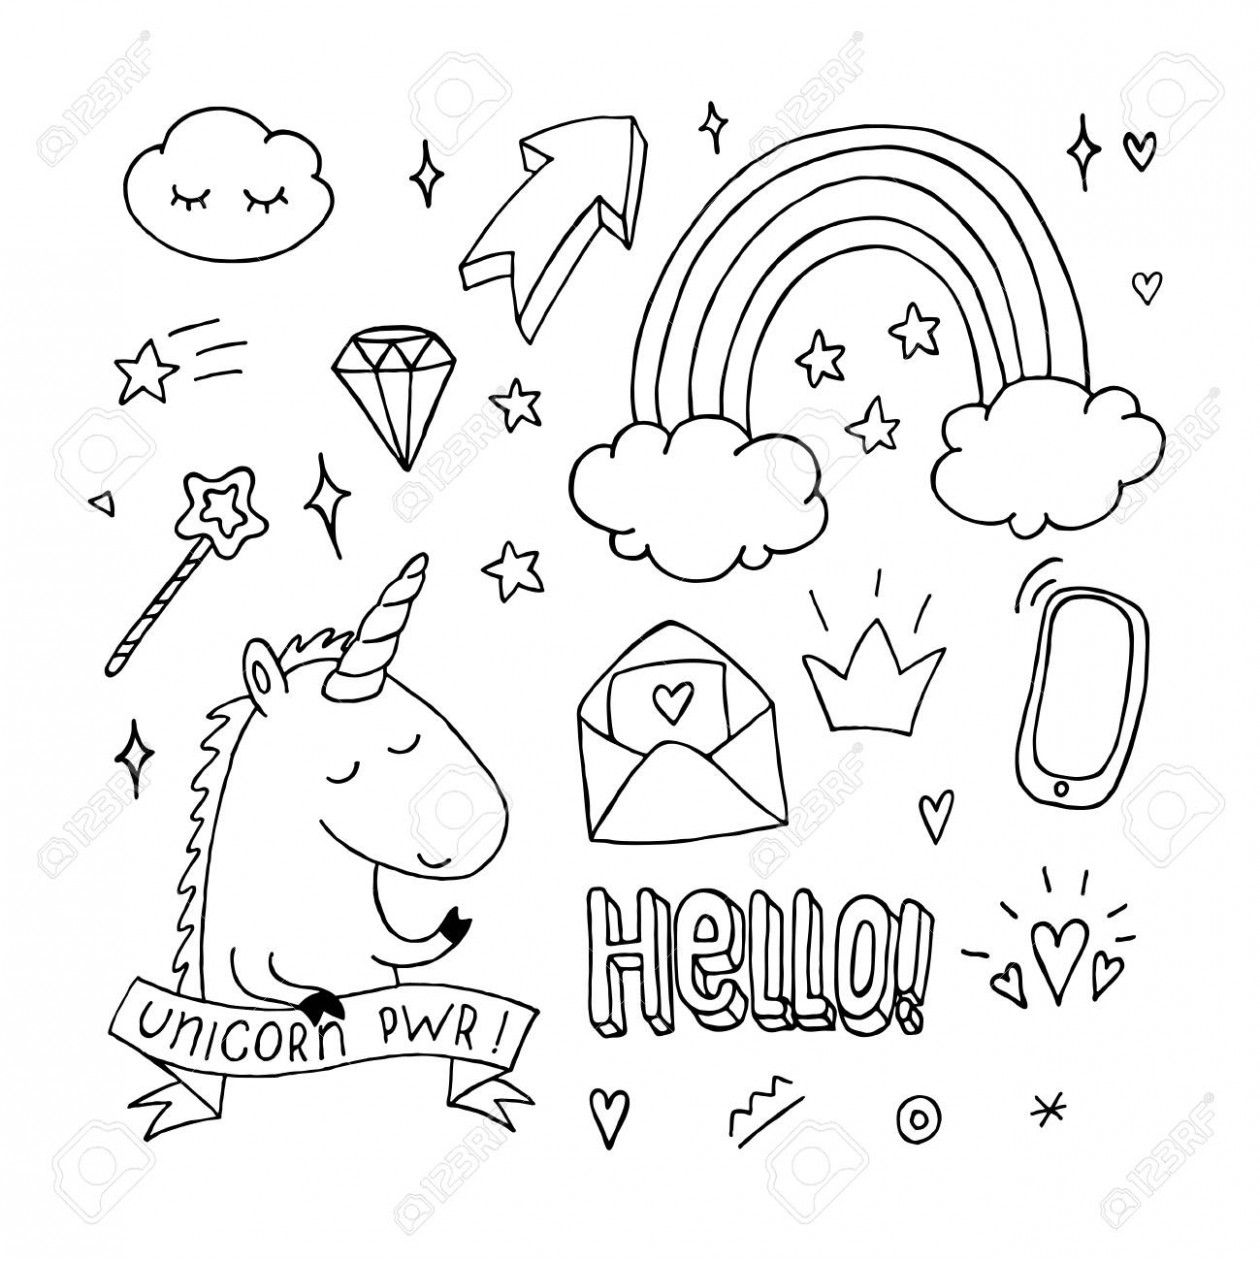 Unicorn Coloring Book Set. Doodle Rainbow Star Crown. Black And ...